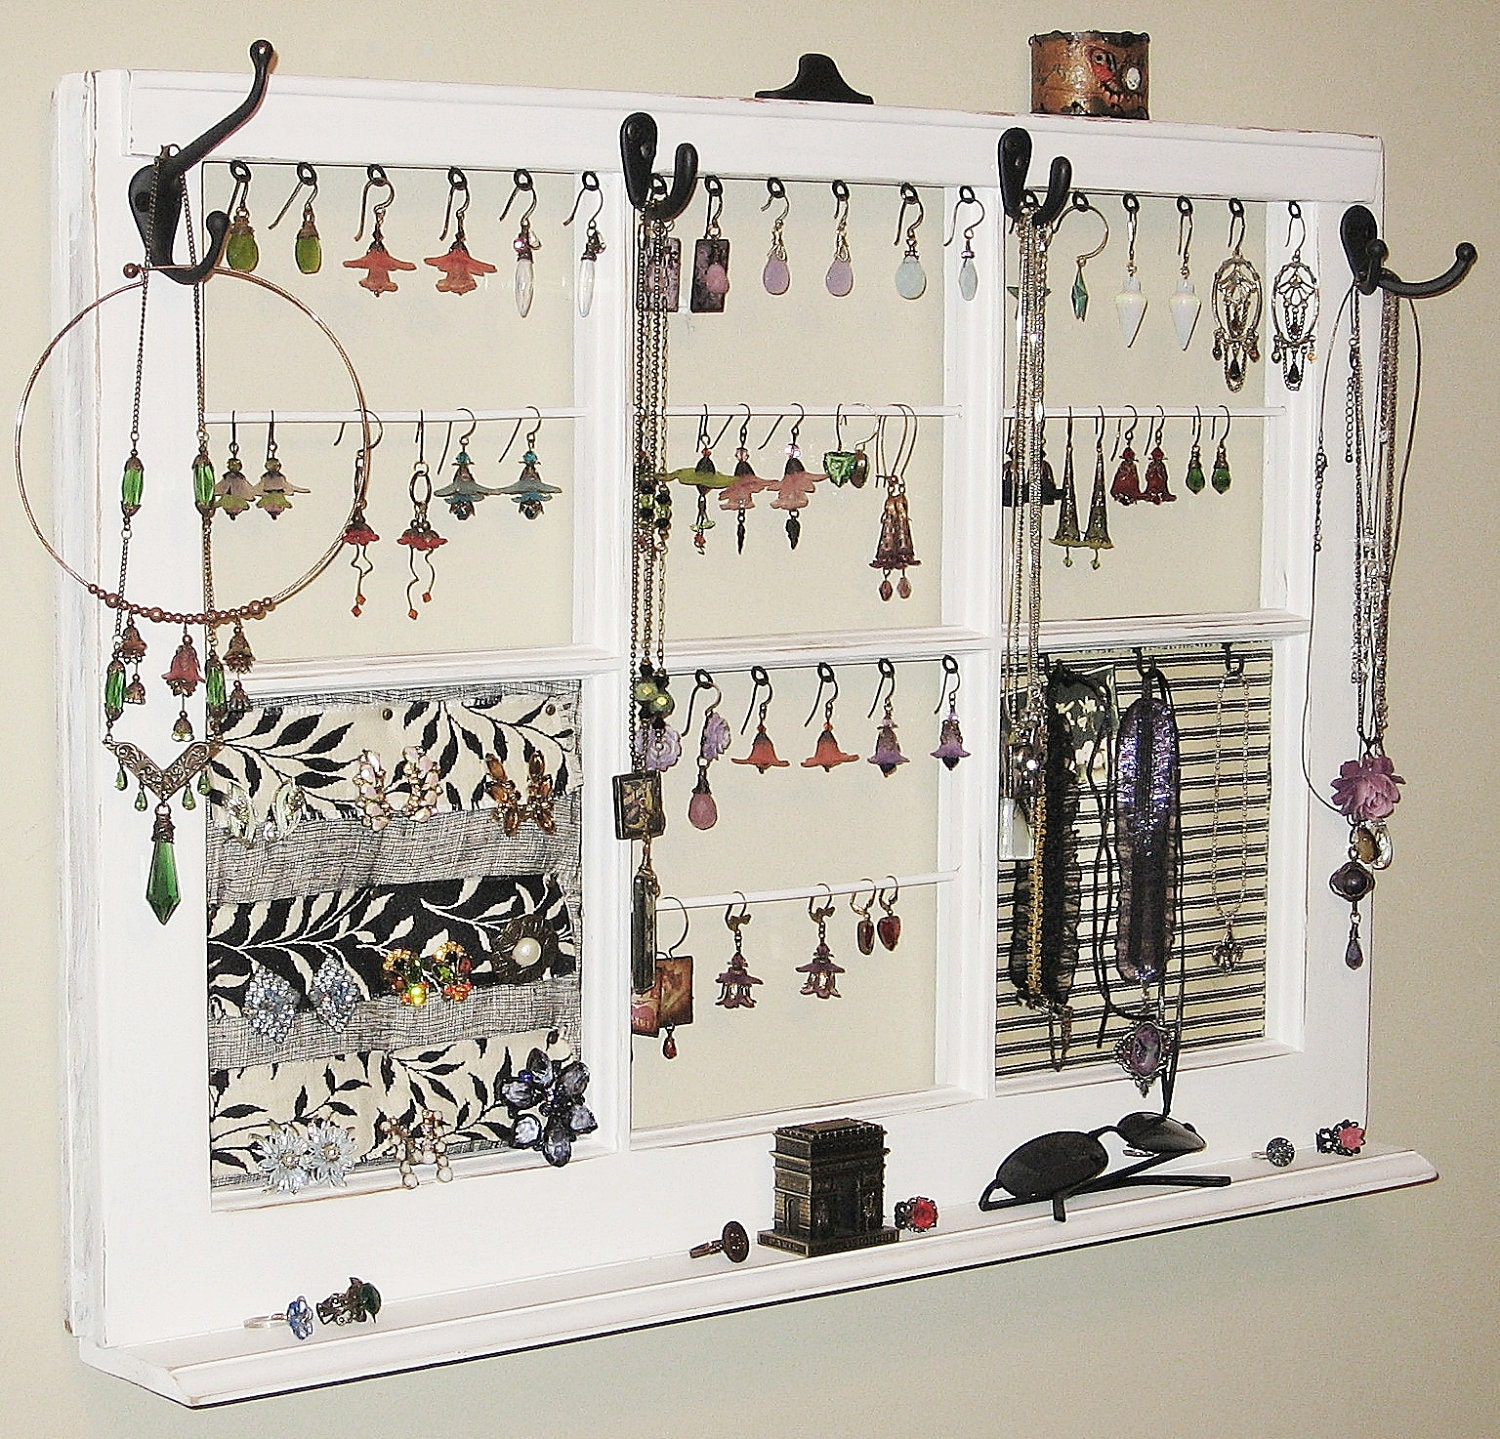 Upcycled Decor Window Frame Wall Hanging Jewelry Organizer